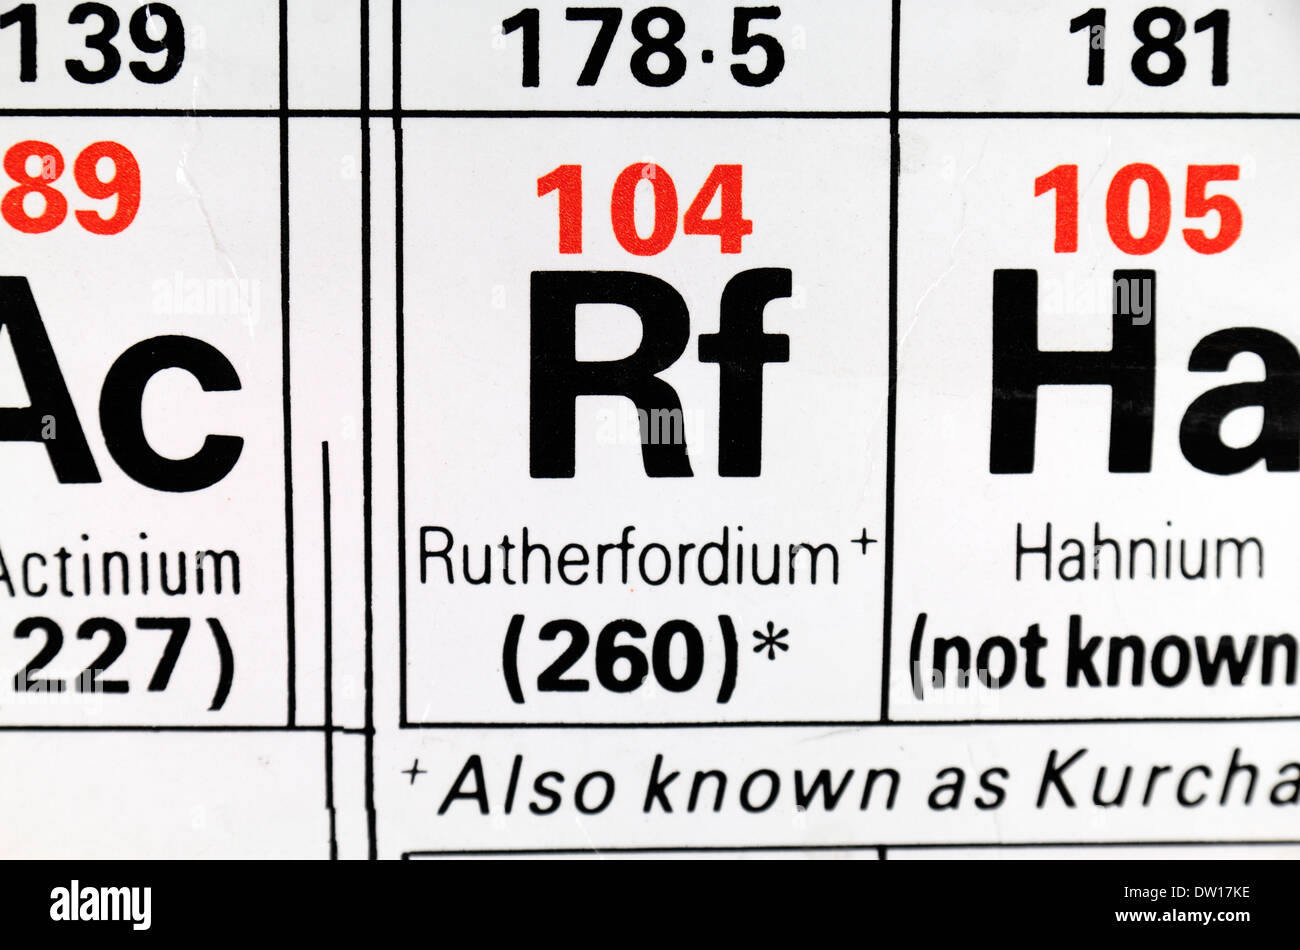 Rutherfordium (Rf) as it appears on the Periodic Table. Stock Photo